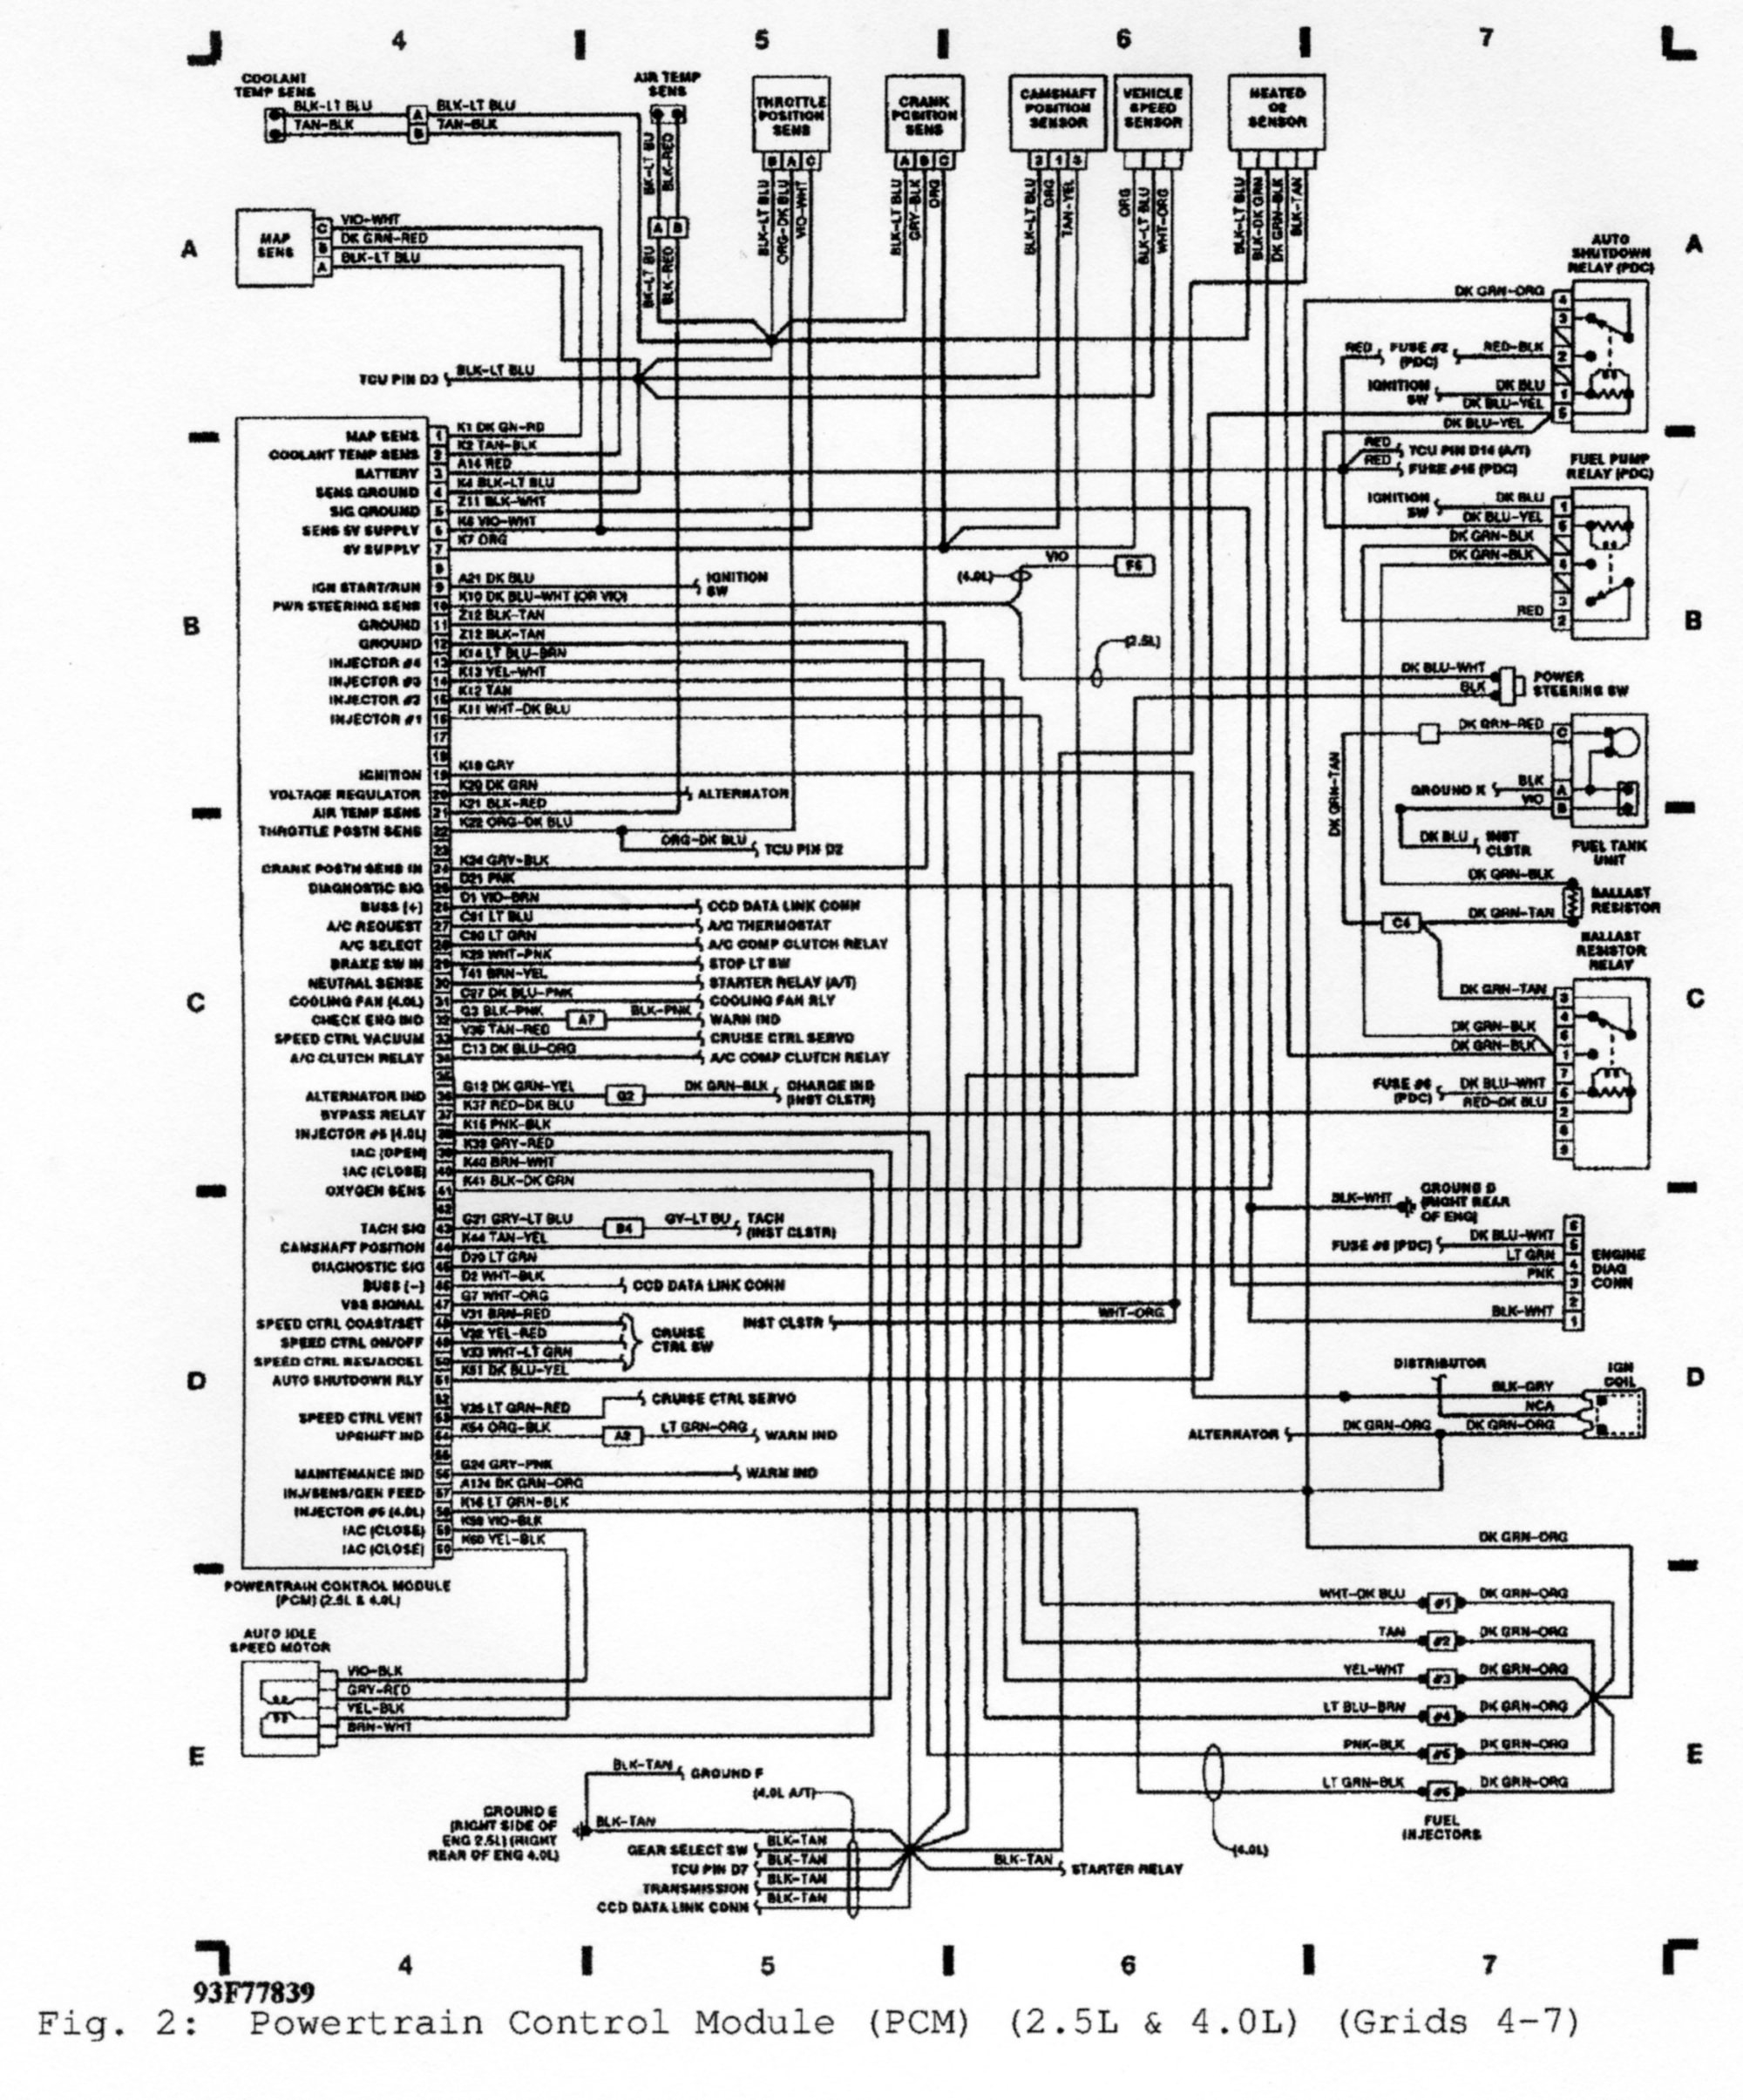 hight resolution of gray marine engine diagram gray circuit diagrams wiring diagram center gray marine engine diagram gray circuit diagrams